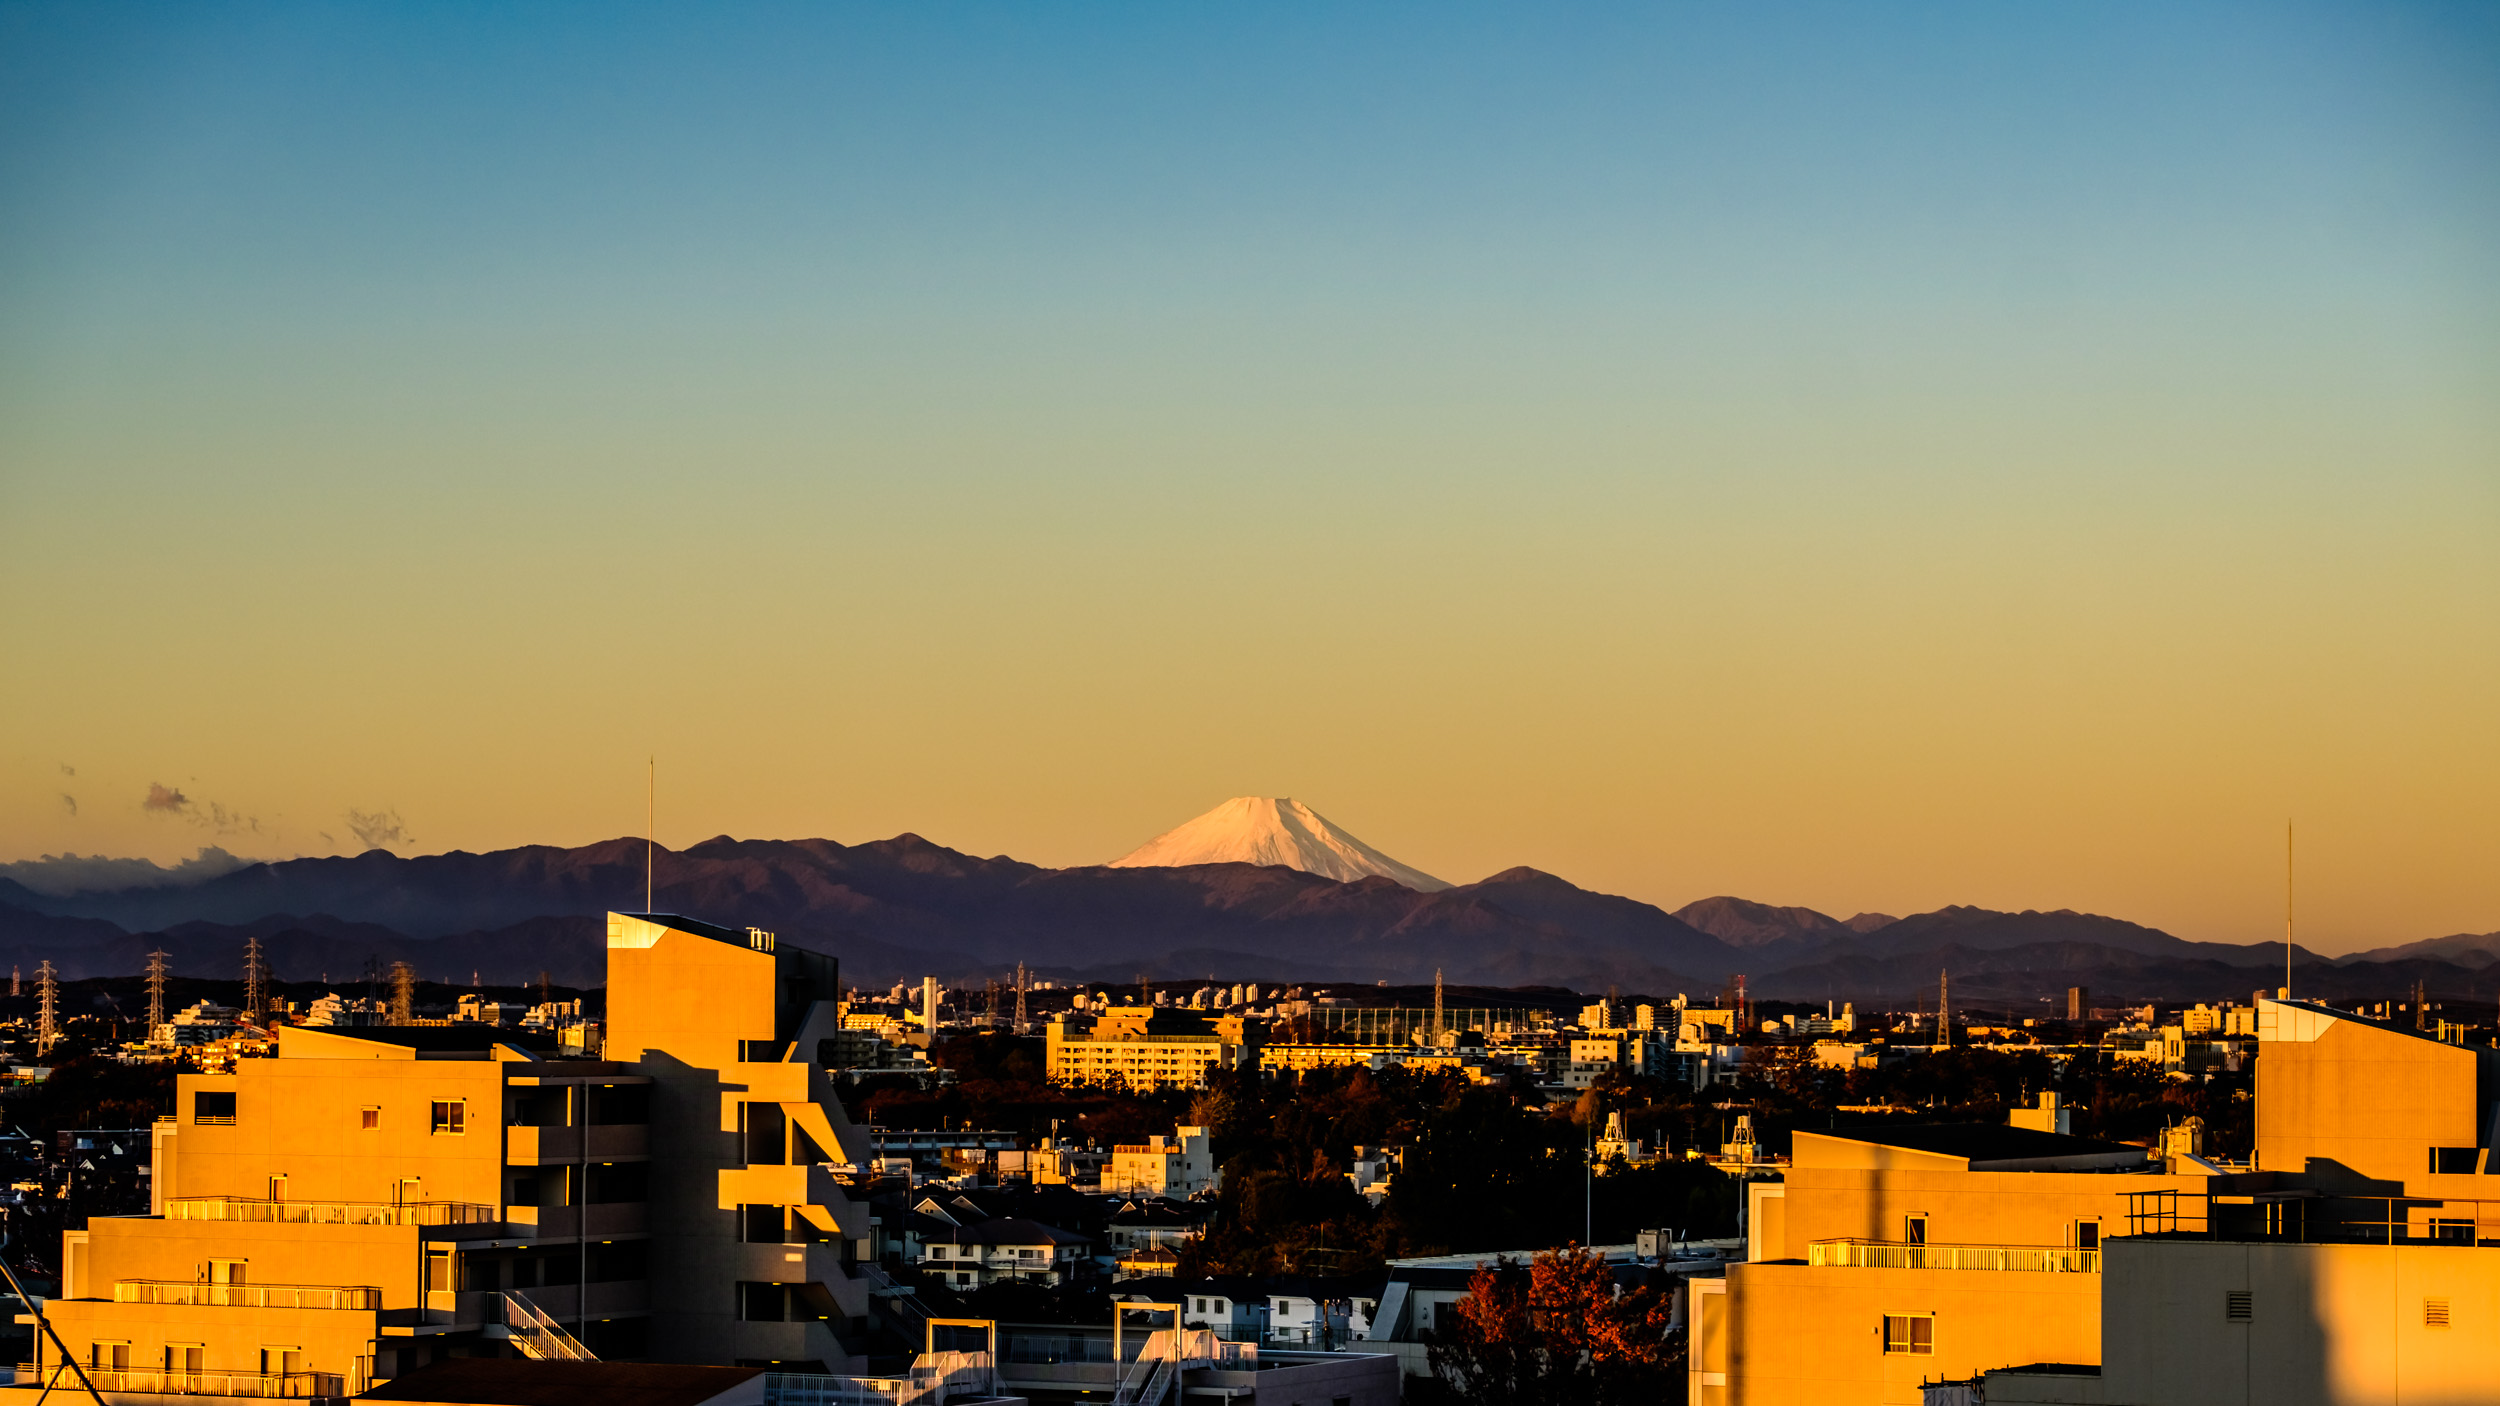 The wider shot of Mt. Fuji seen from my roof. There are practically no obstacles in the way